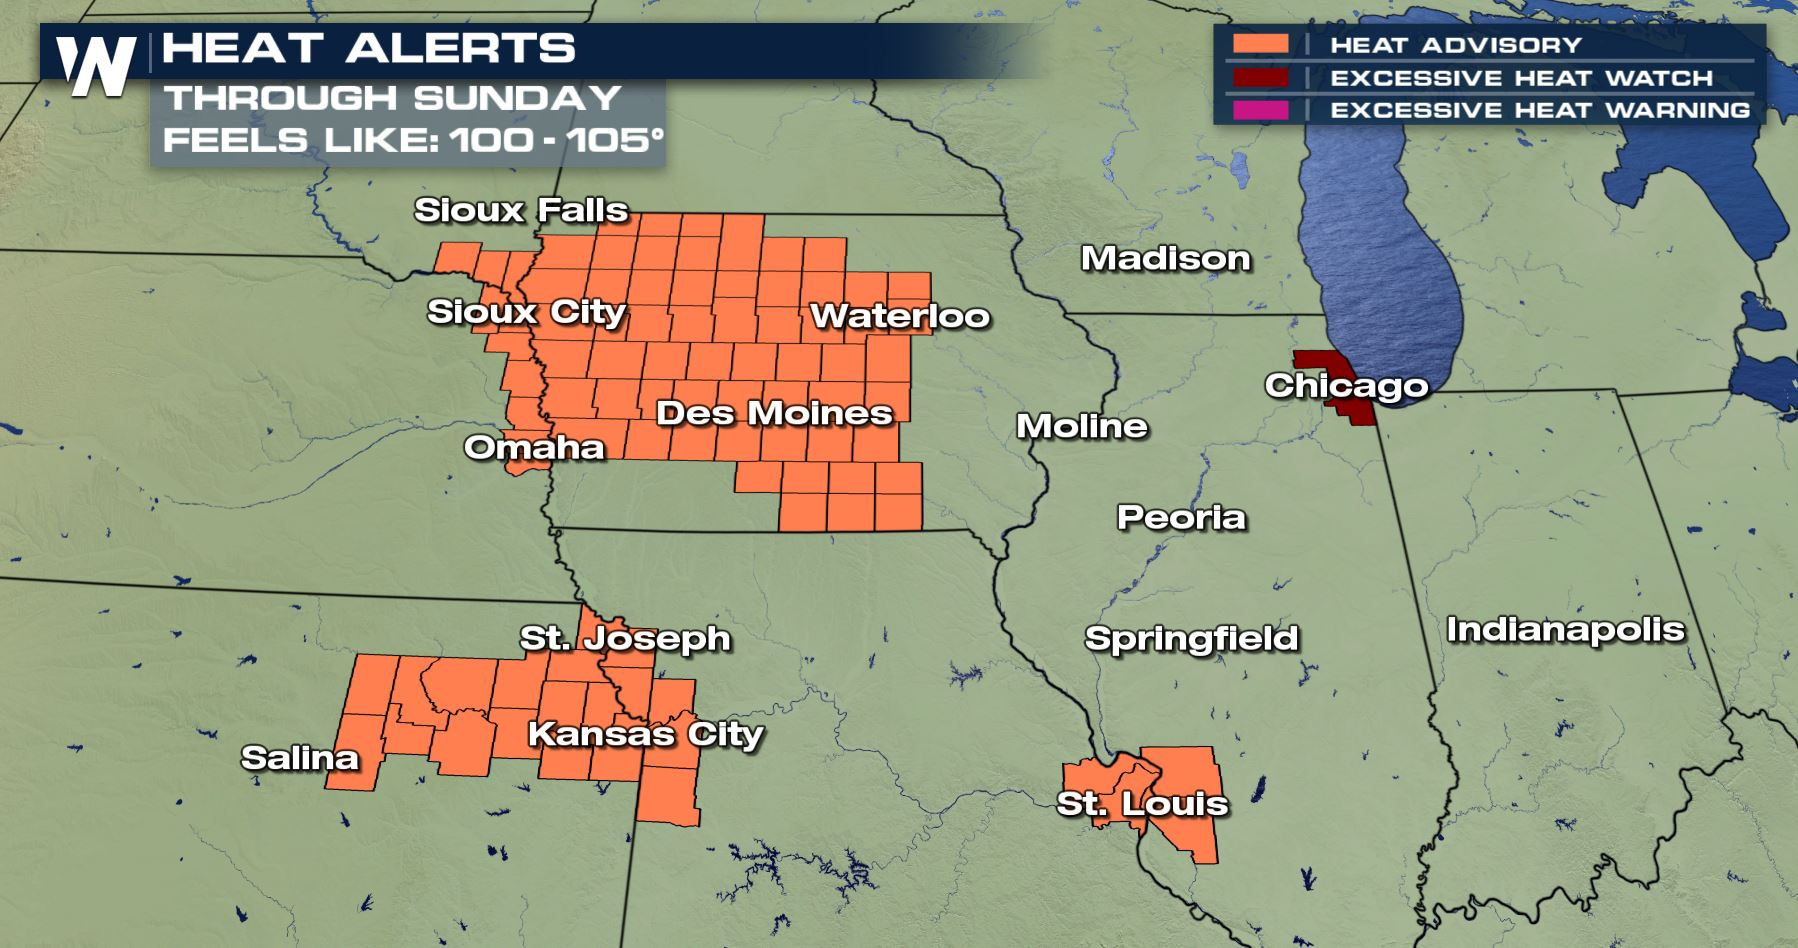 The Midwest Bakes in Dangerous Heat